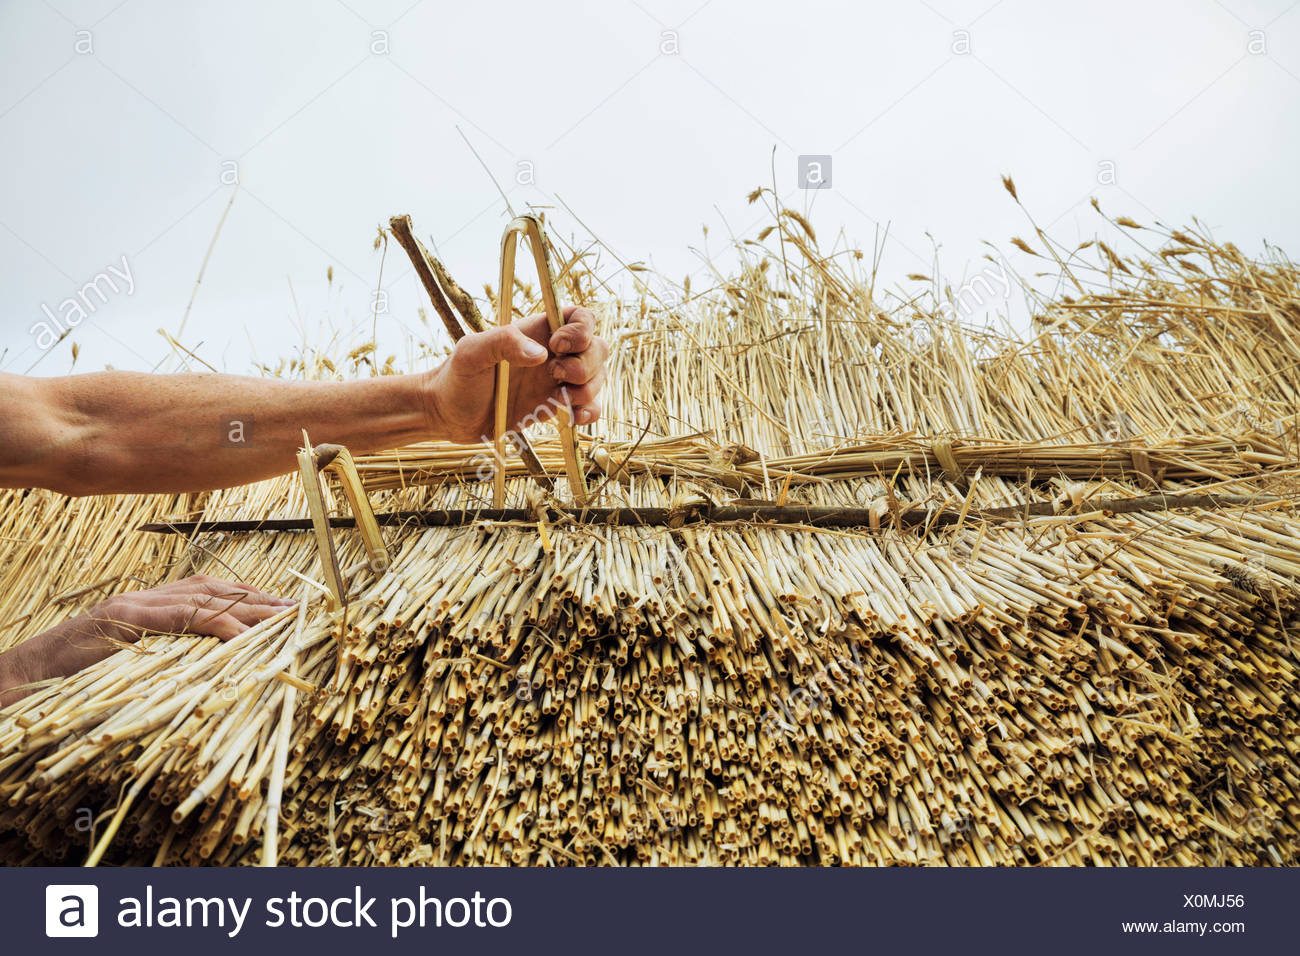 Man thatching a roof, inserting hazel wood spars to fasten the straw. - Stock Image